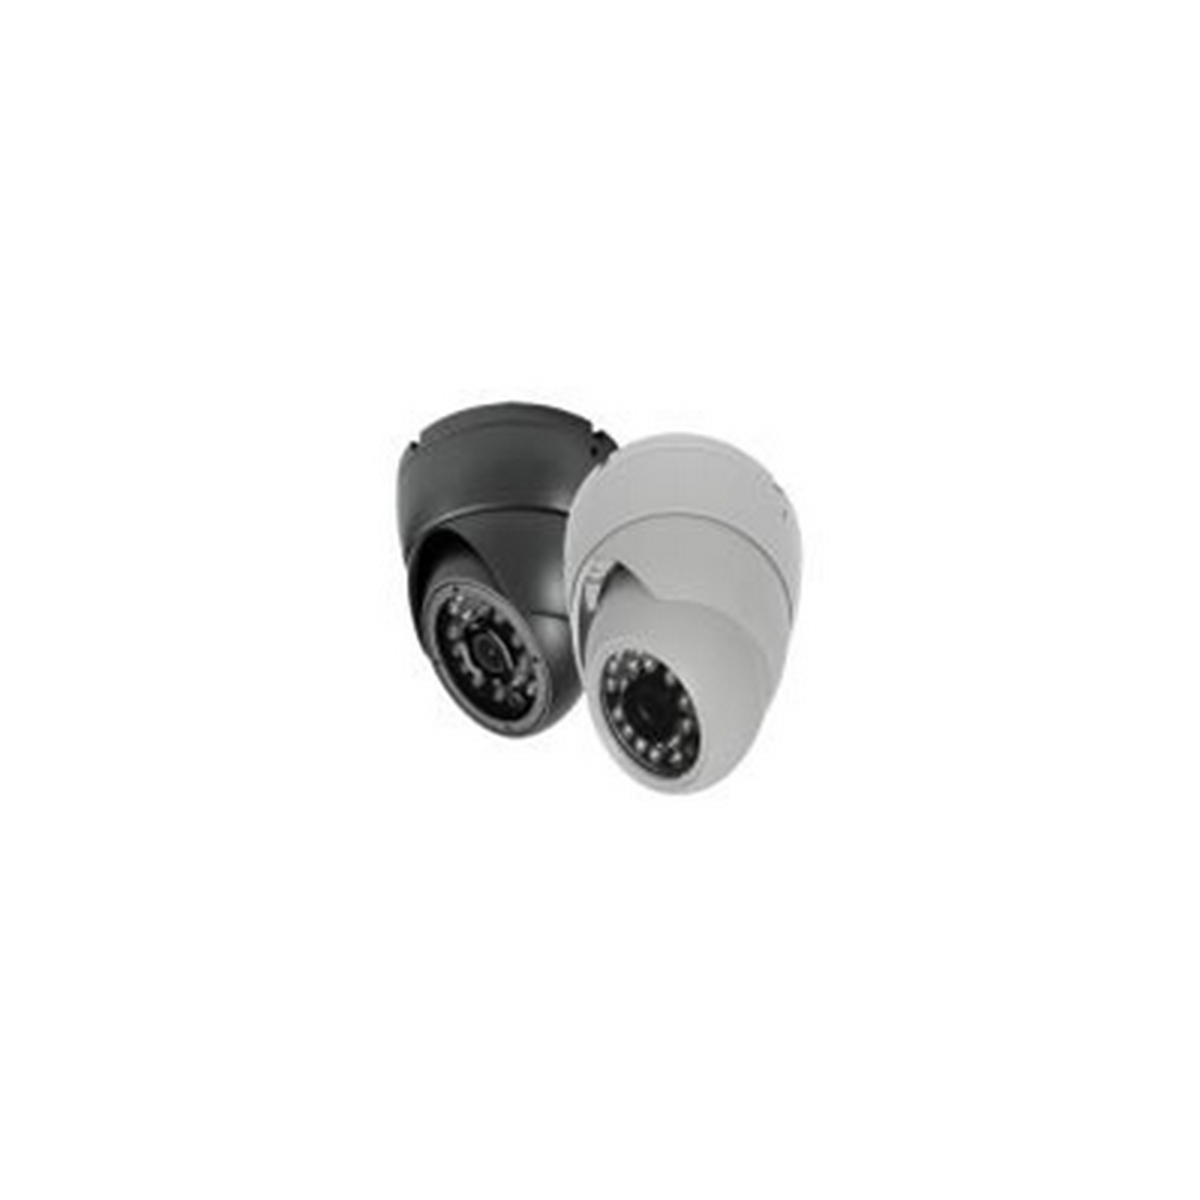 TVI HD 1080P Turret Camera, 3.6mm Lens, IR, White, 3 Way